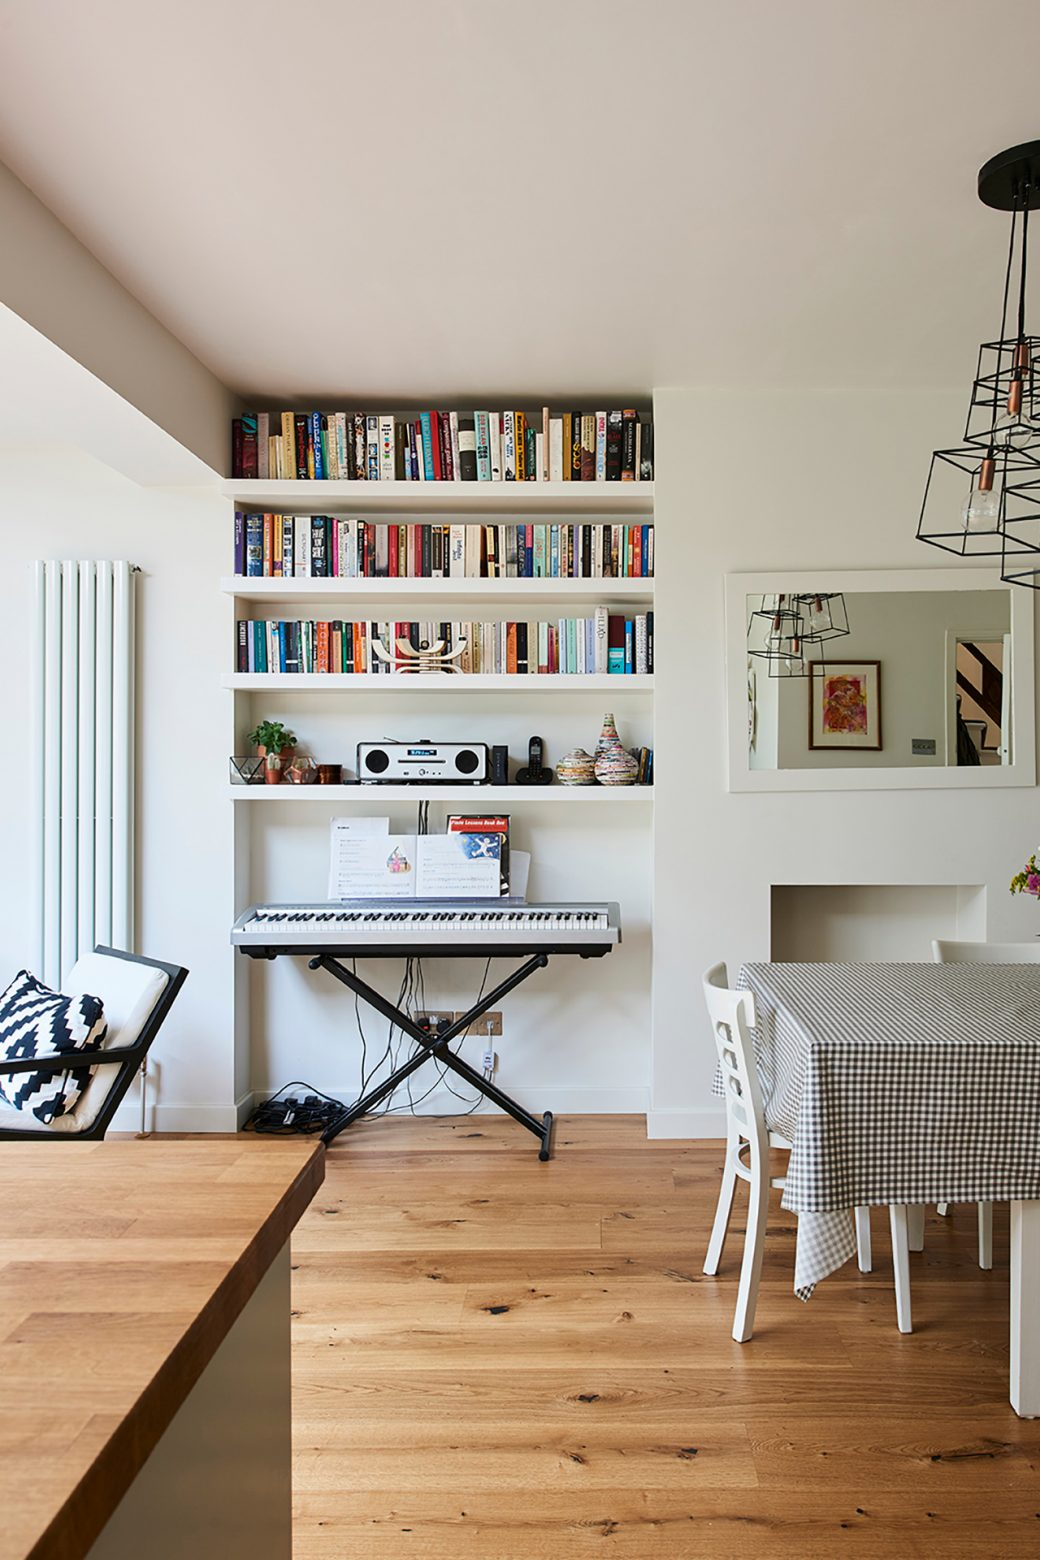 Dining area includes shelving for books